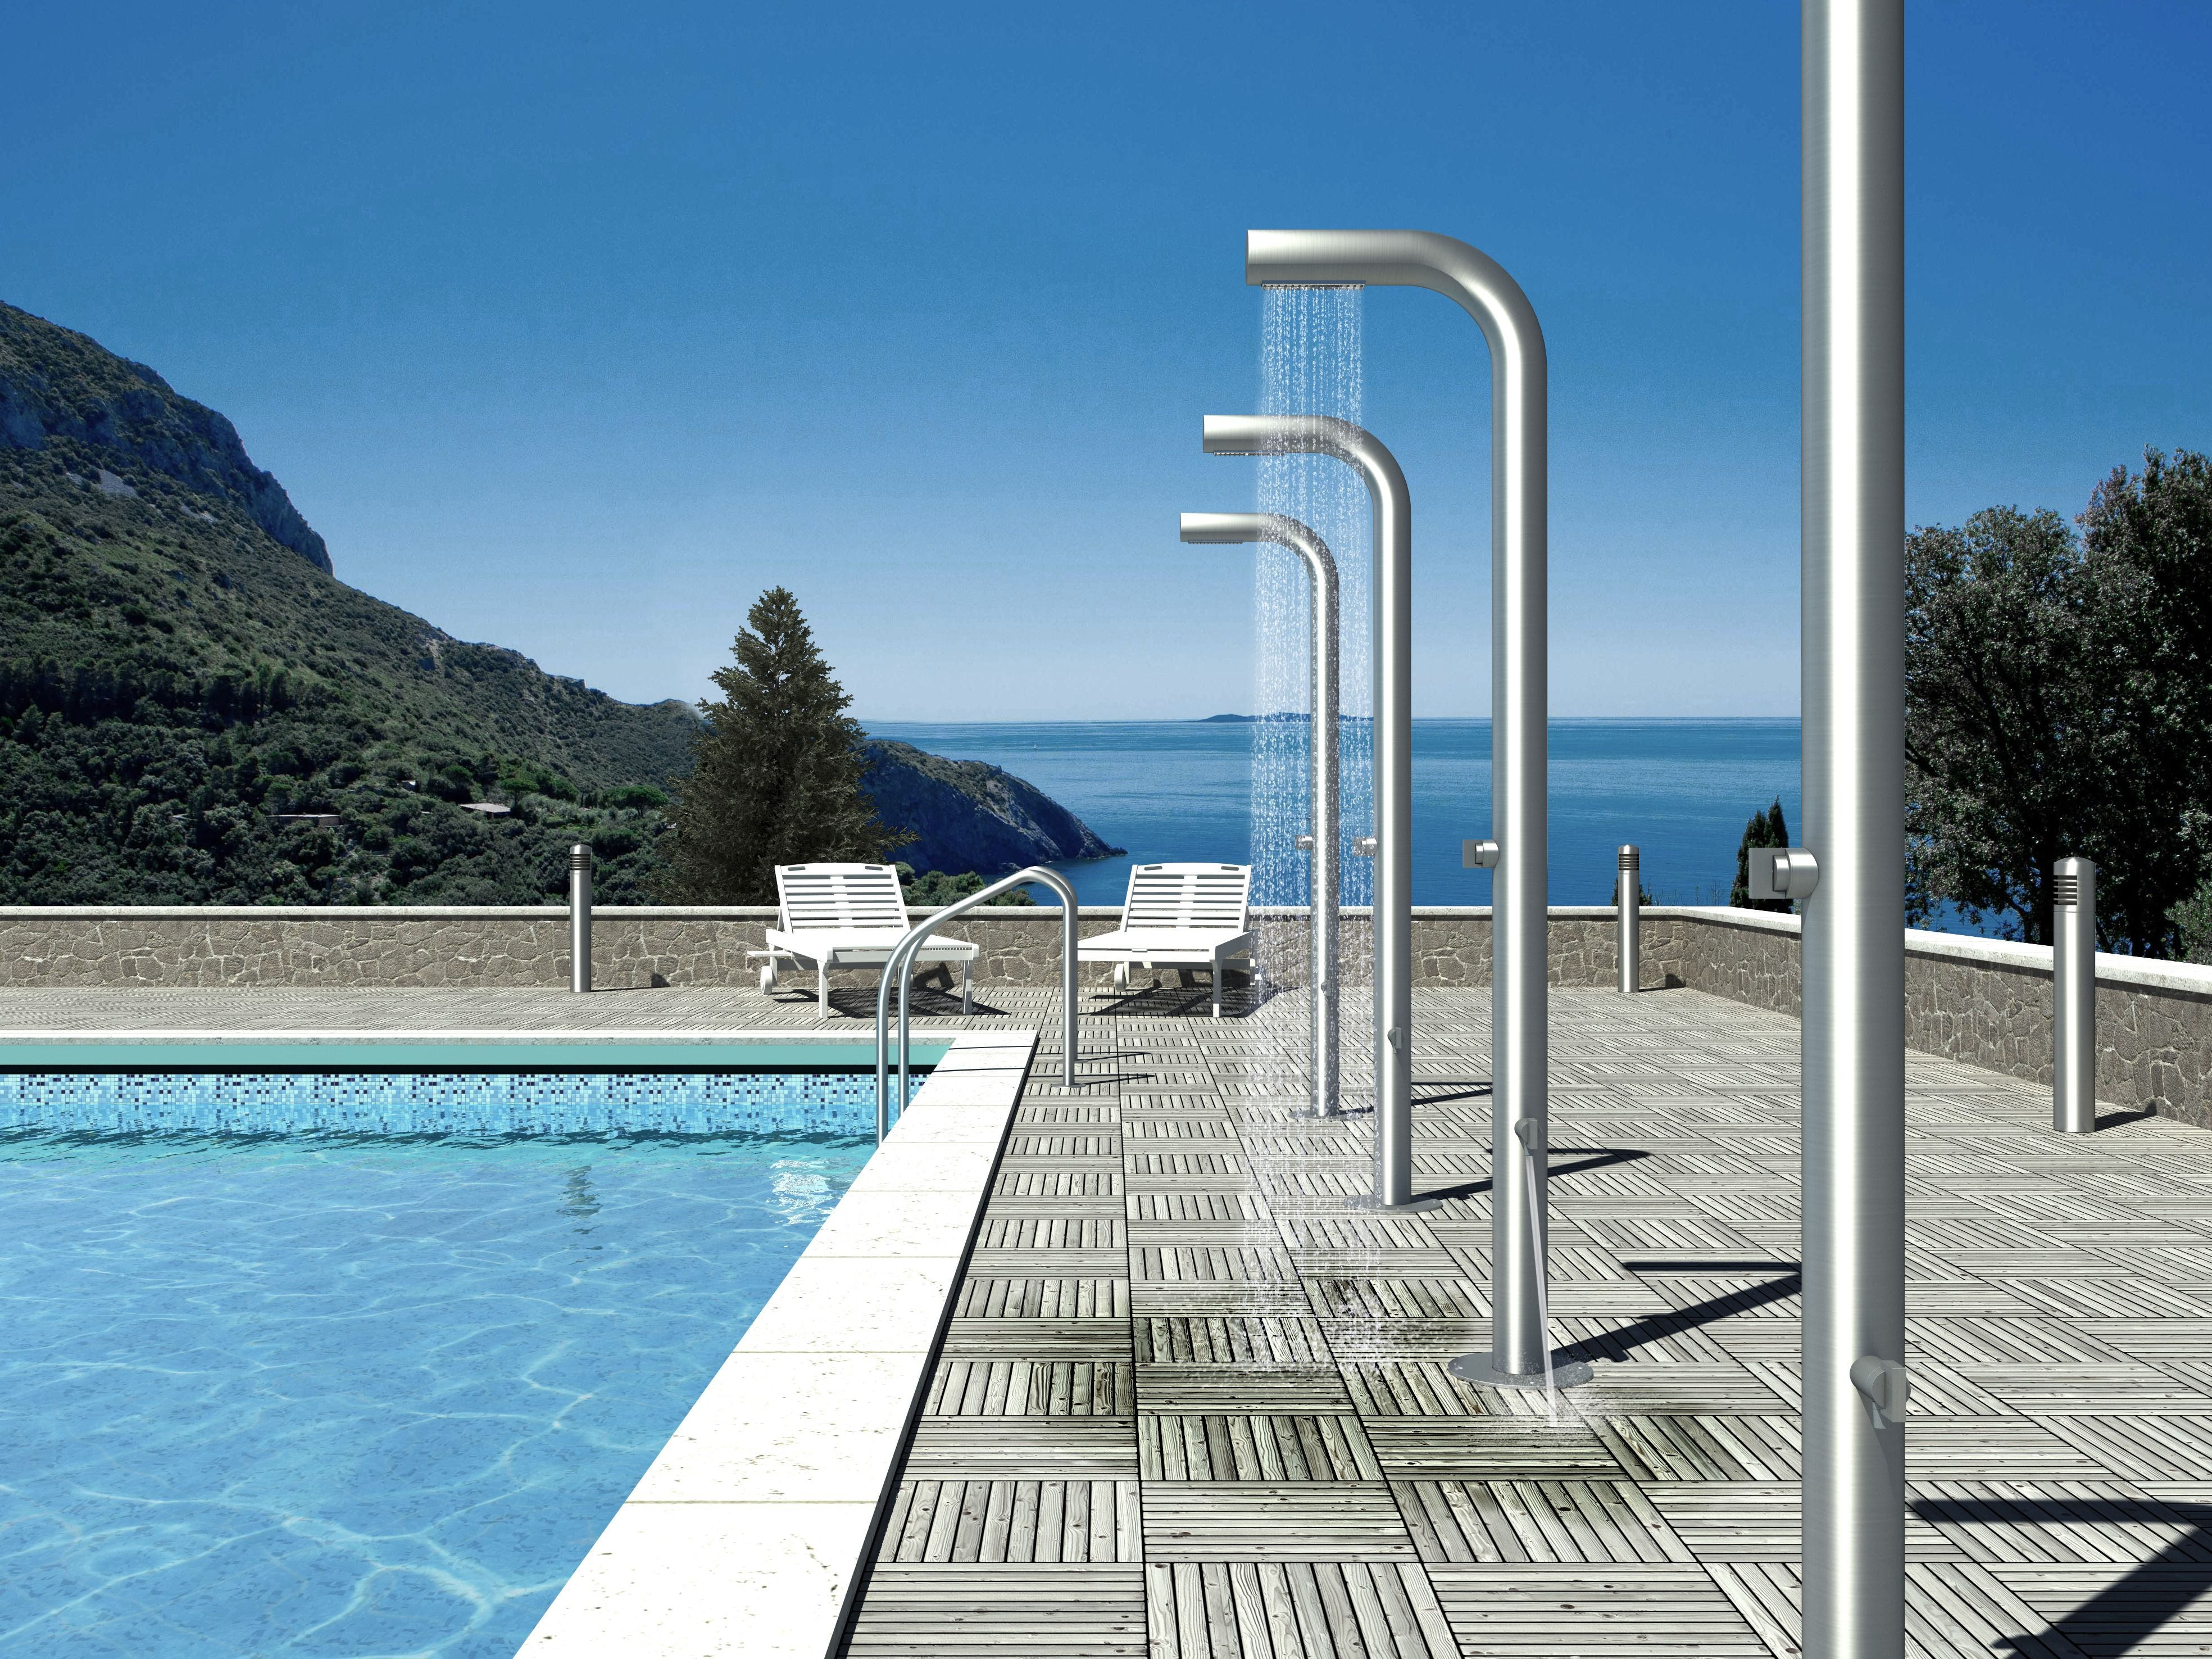 Bongio outdoor shower for swimming pool fun bathroom for Pool house with bathroom cost